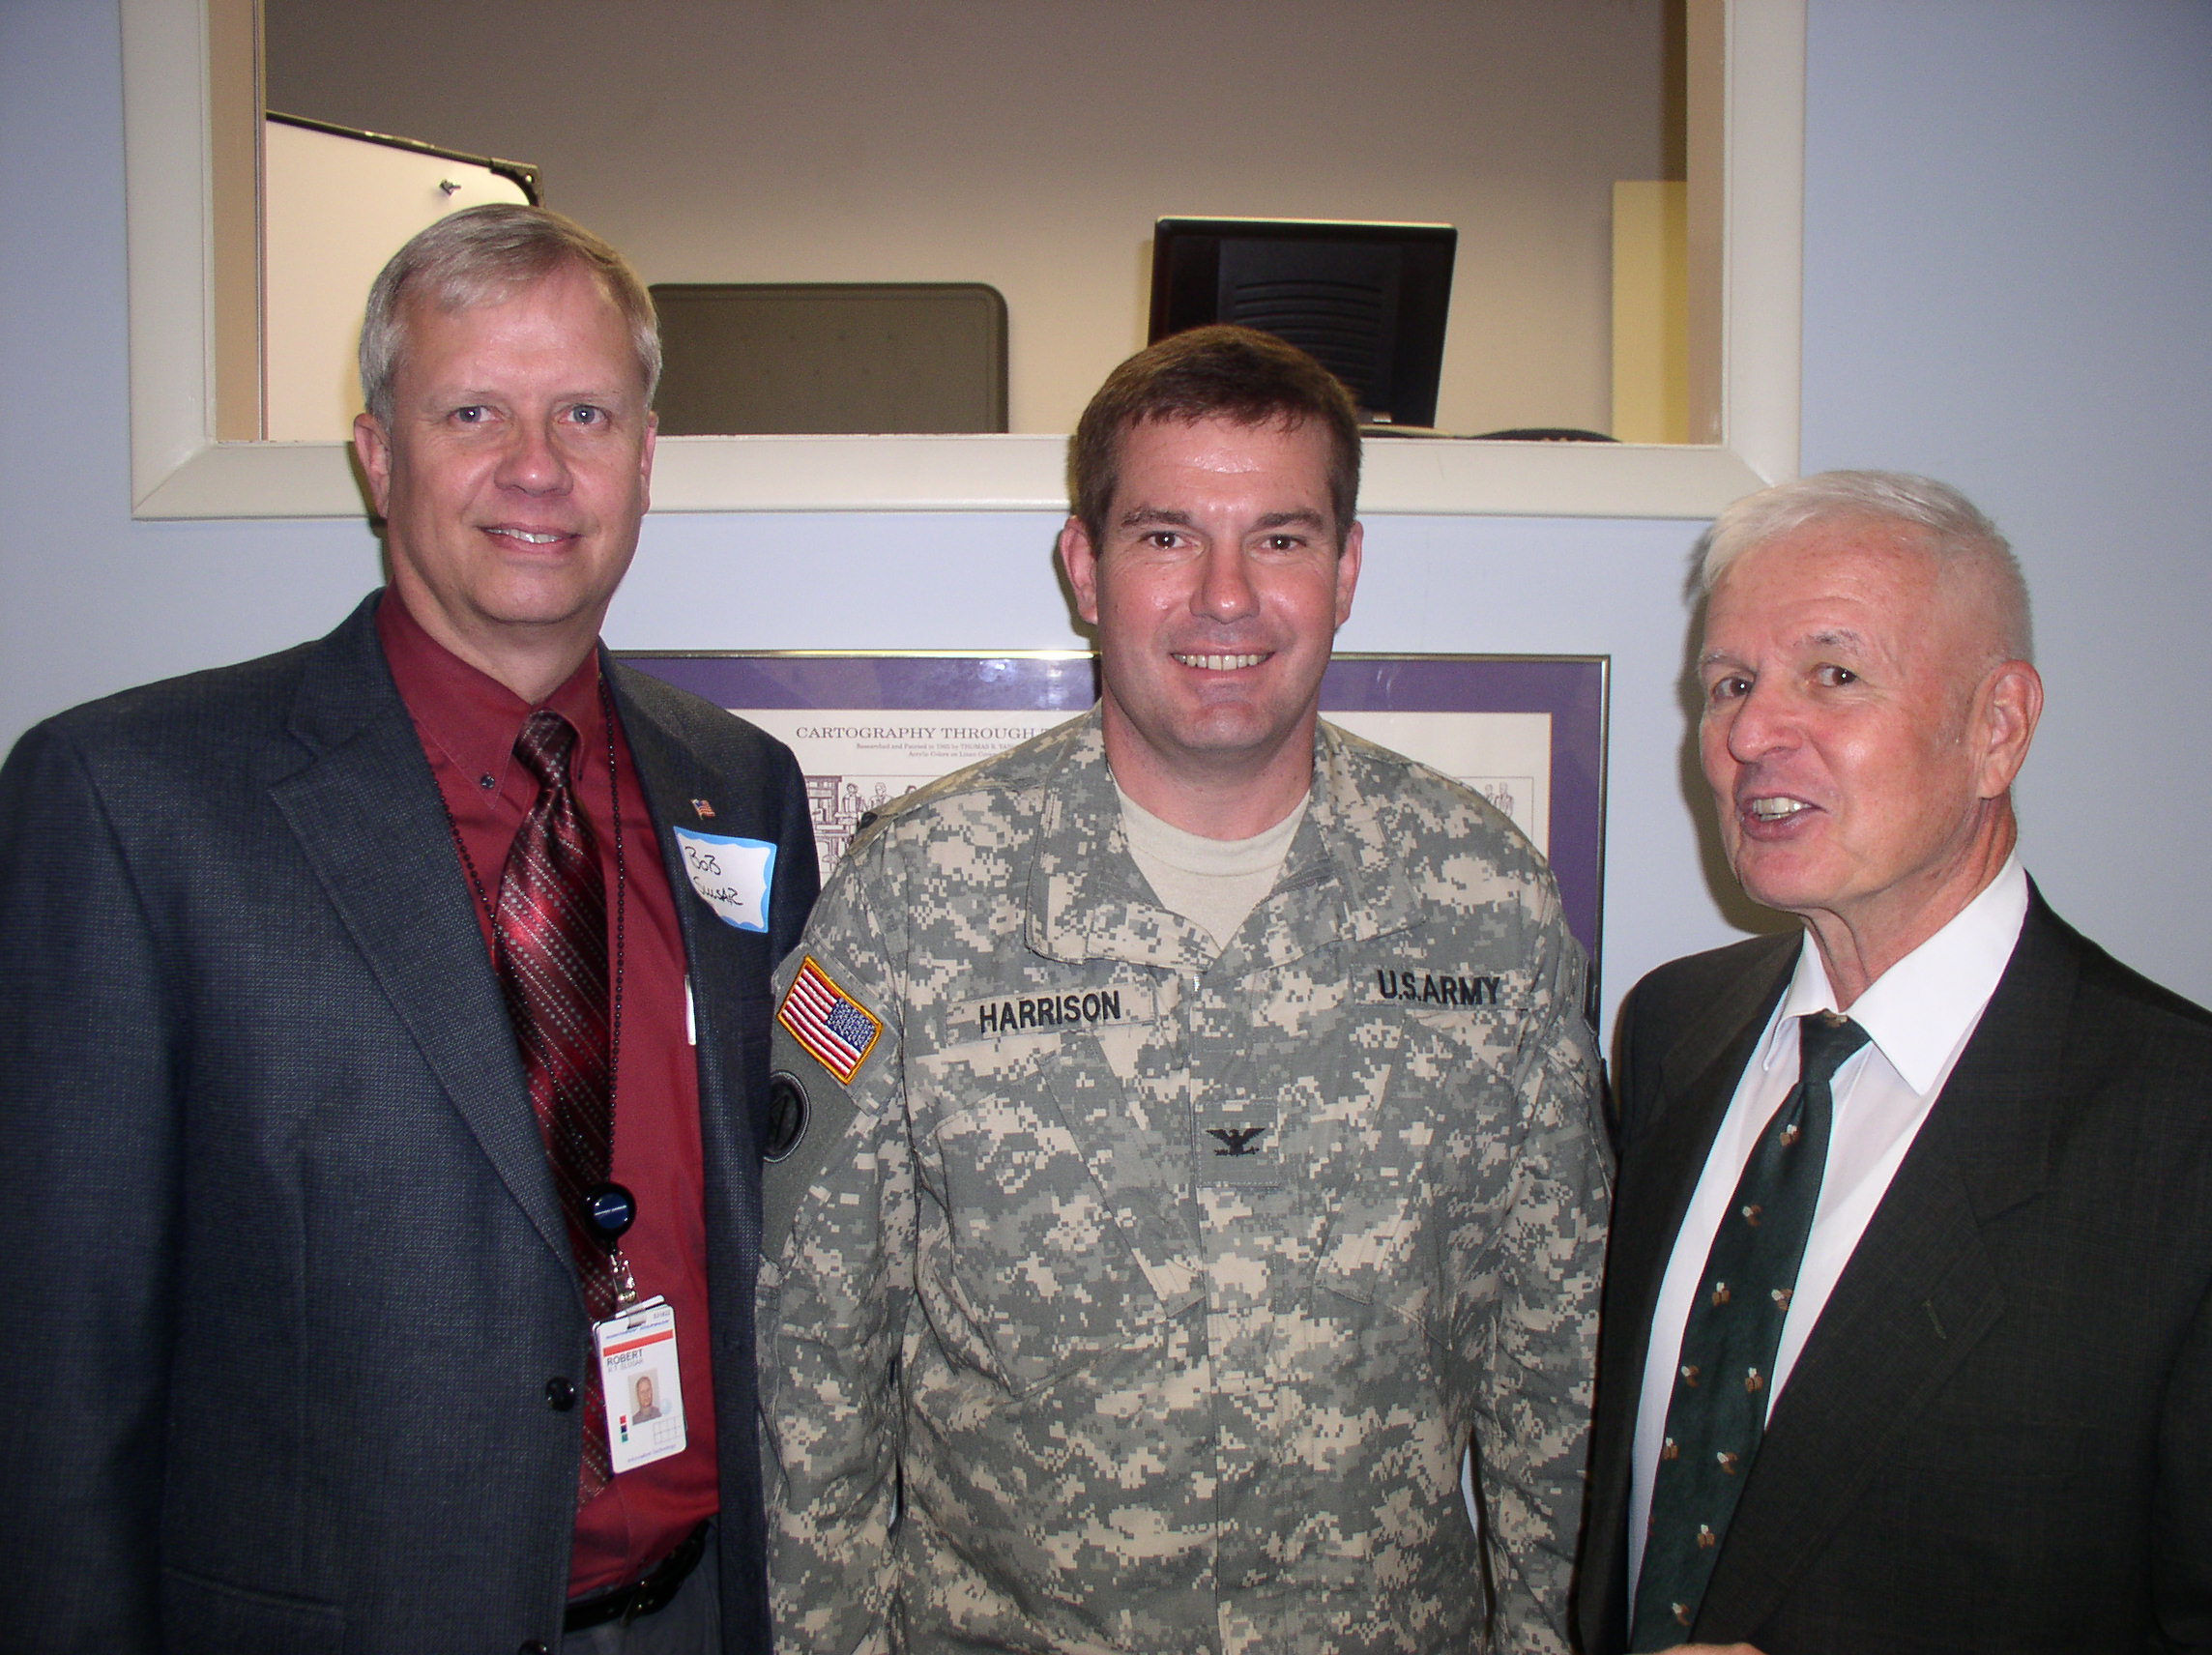 L to R - COL Bob Slusar, COL Stu Harrison and COL Dan Clark